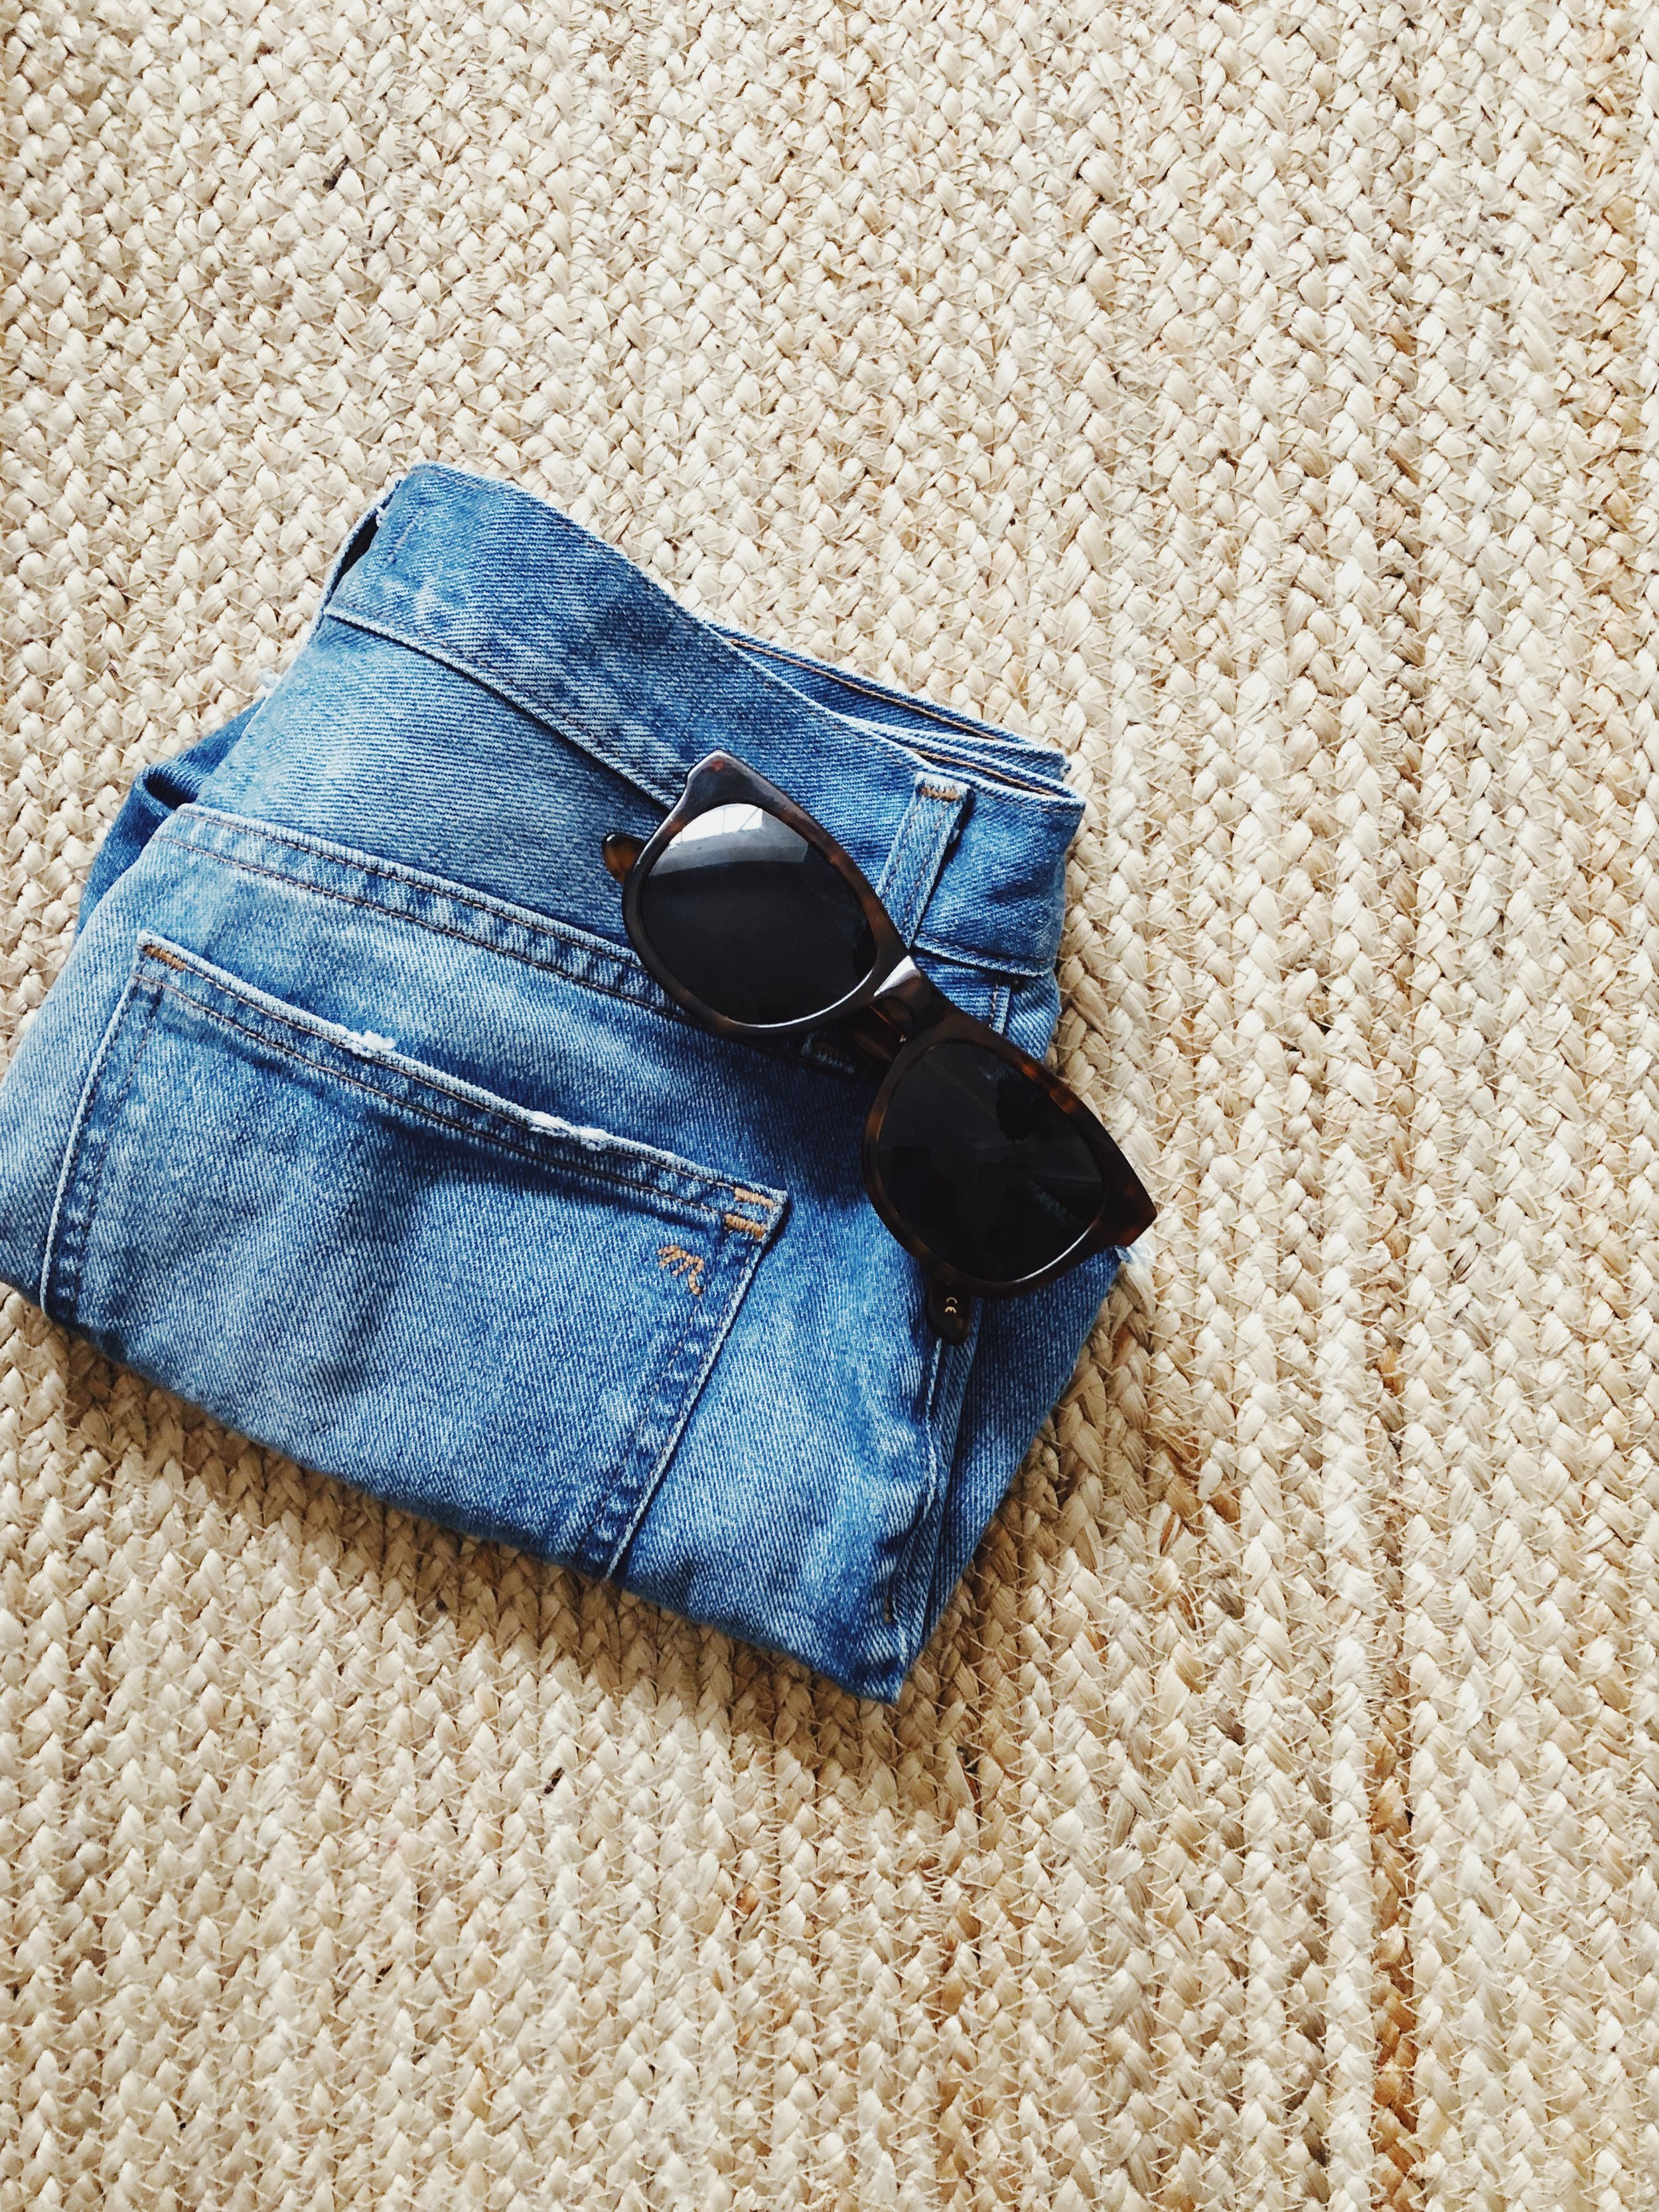 On finding clothes to wear in the summer - vintage denim jeans, capsule wardrobes and modest fashion and trying to figure it all out. More on my blog, Our Story Time ourstorytime.co.uk